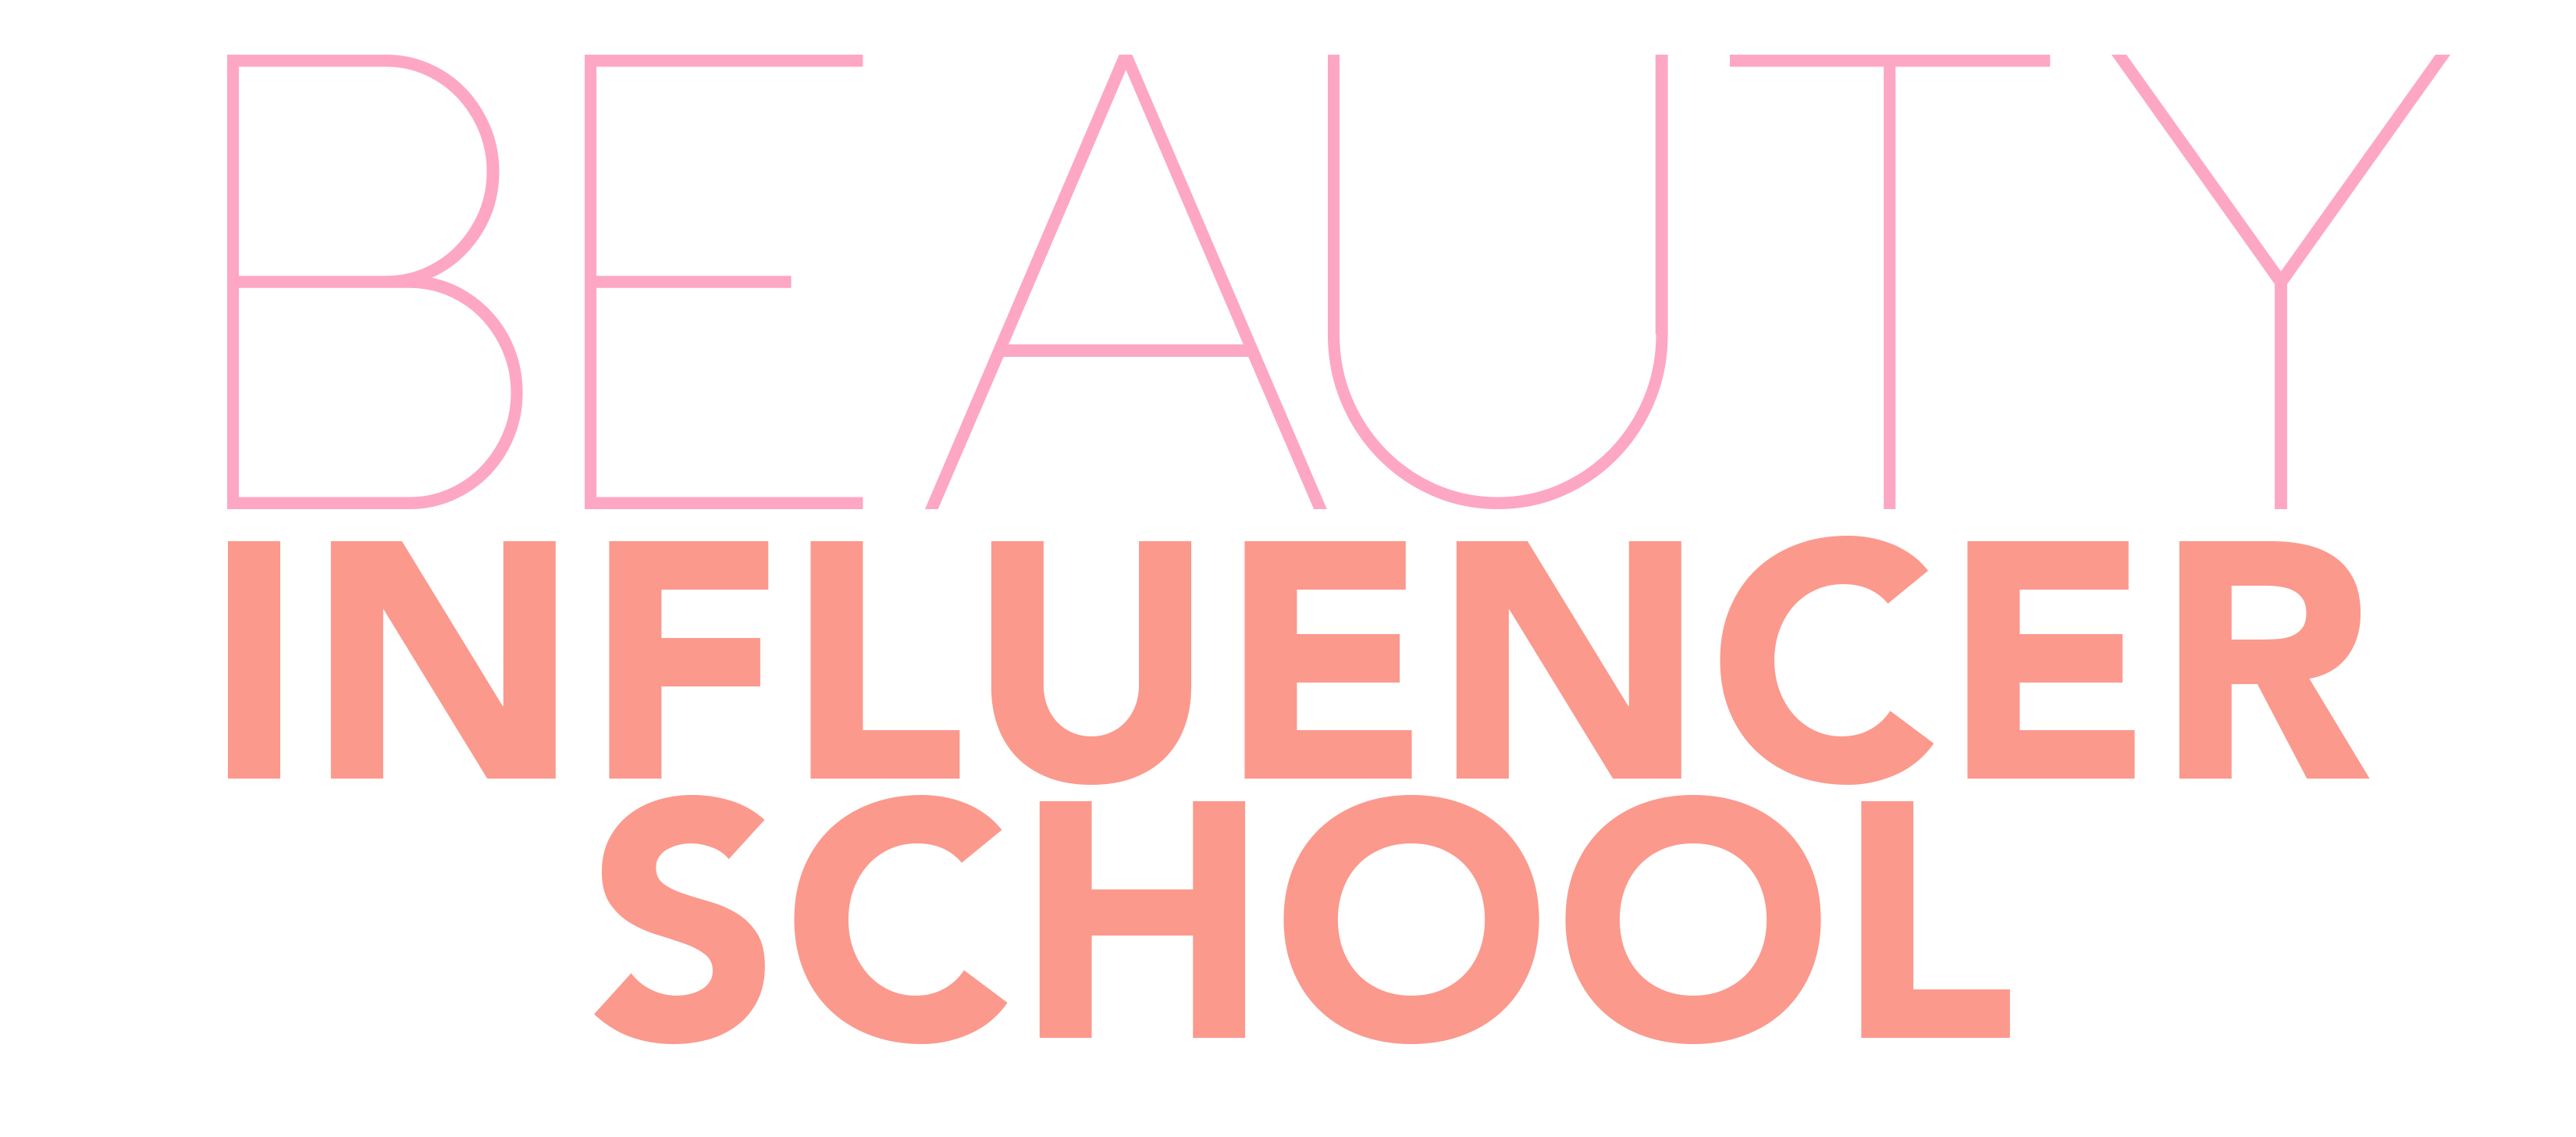 Beauty Influencer School